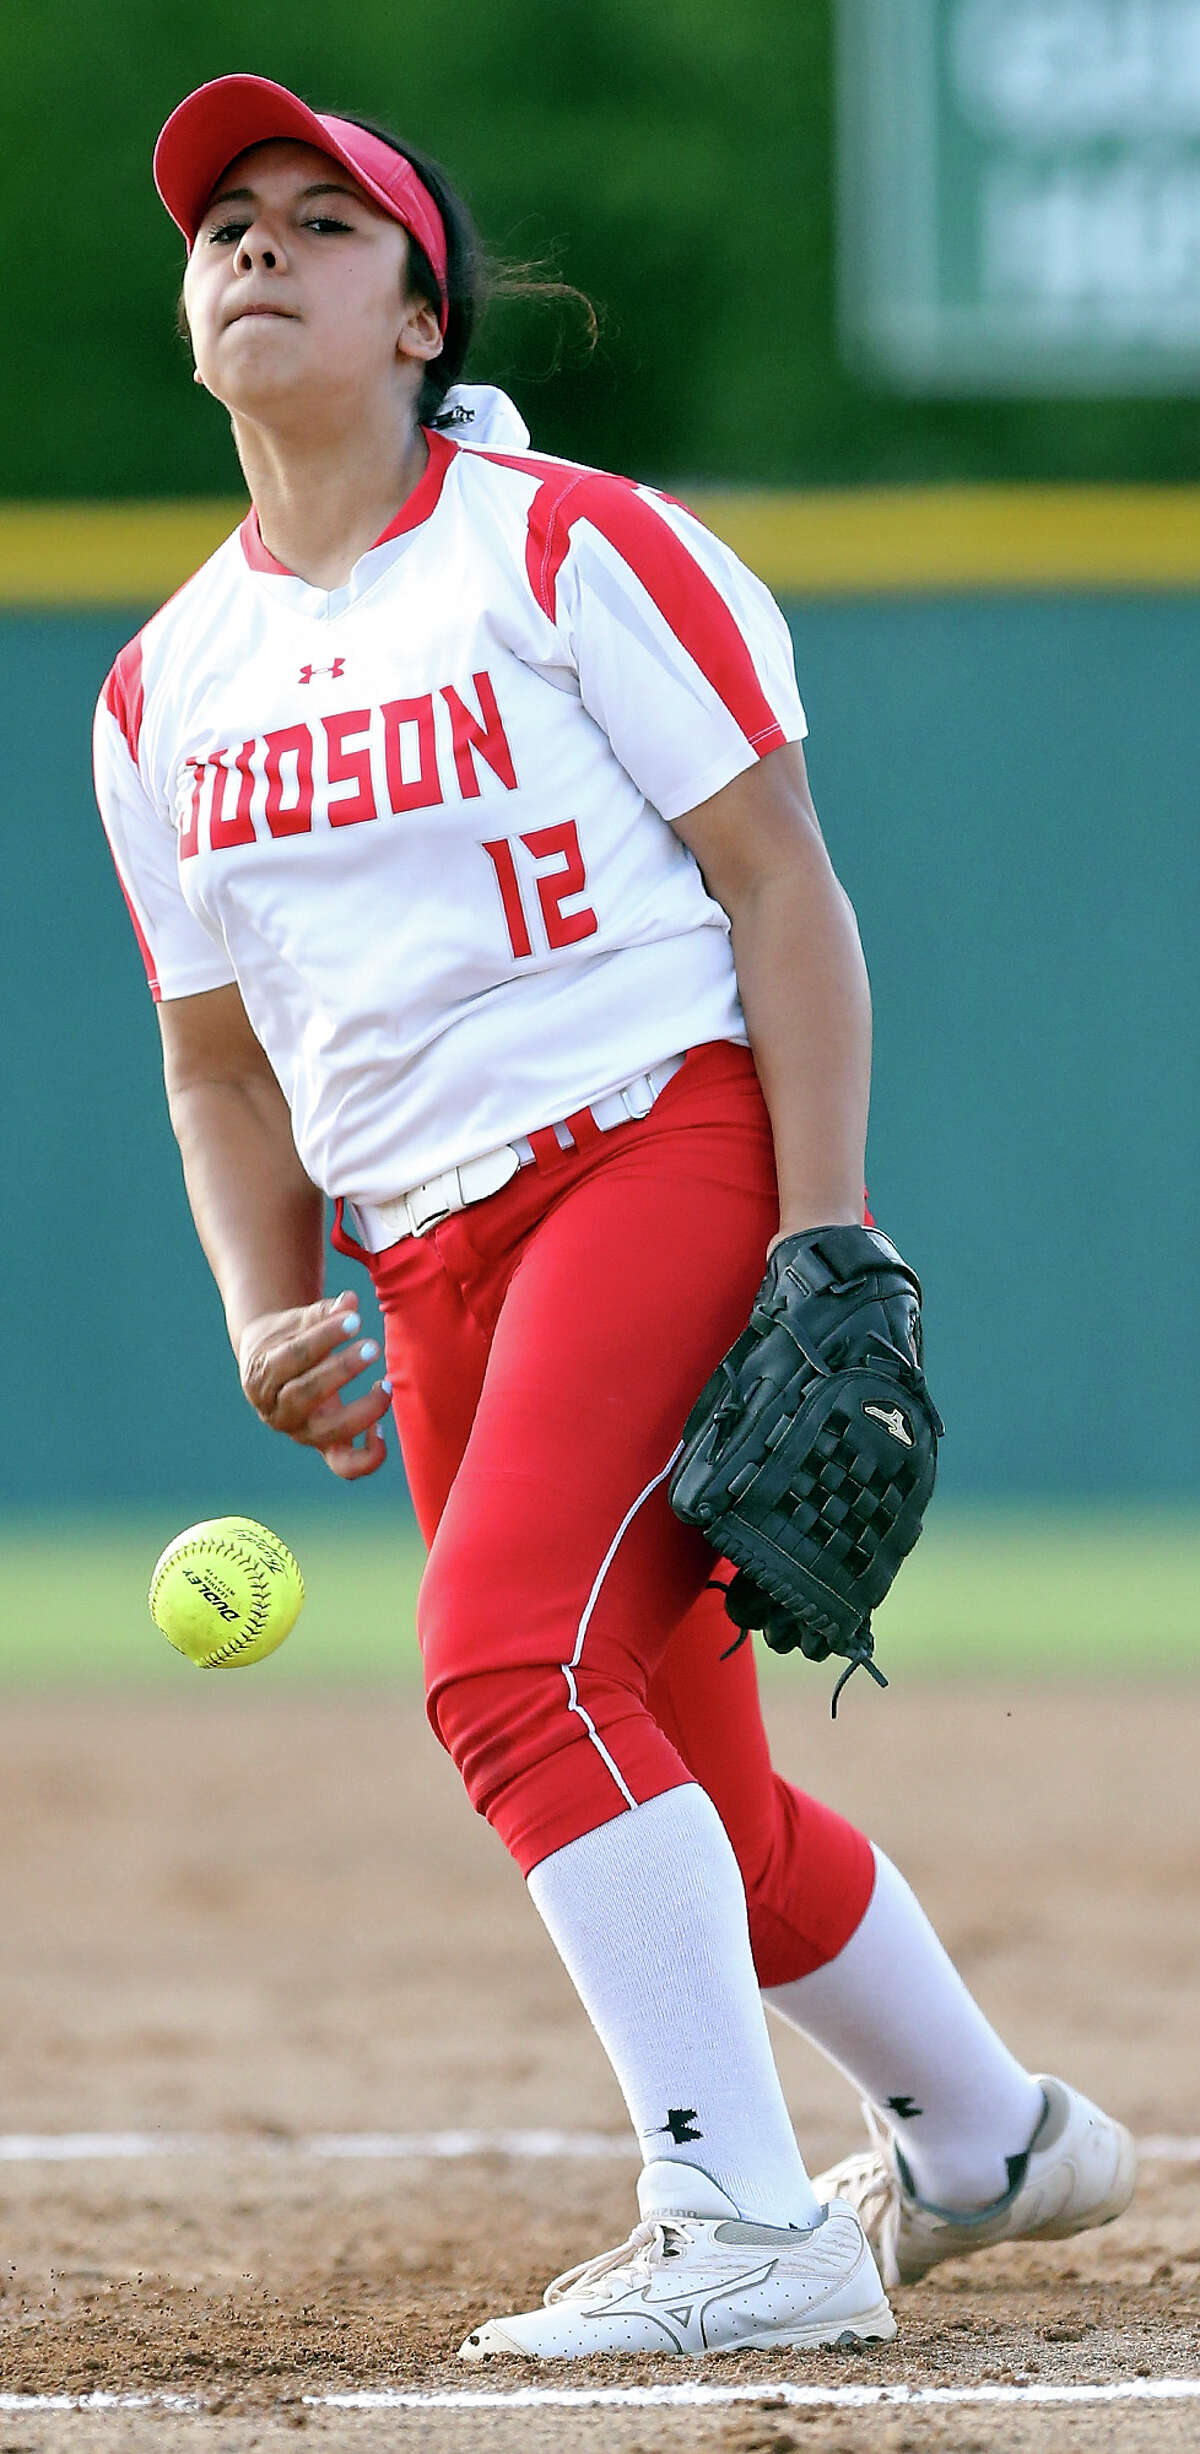 Judson's Michelle Iparraguirre was 24-6 with a 2.26 ERA and 143 strikeouts last season.